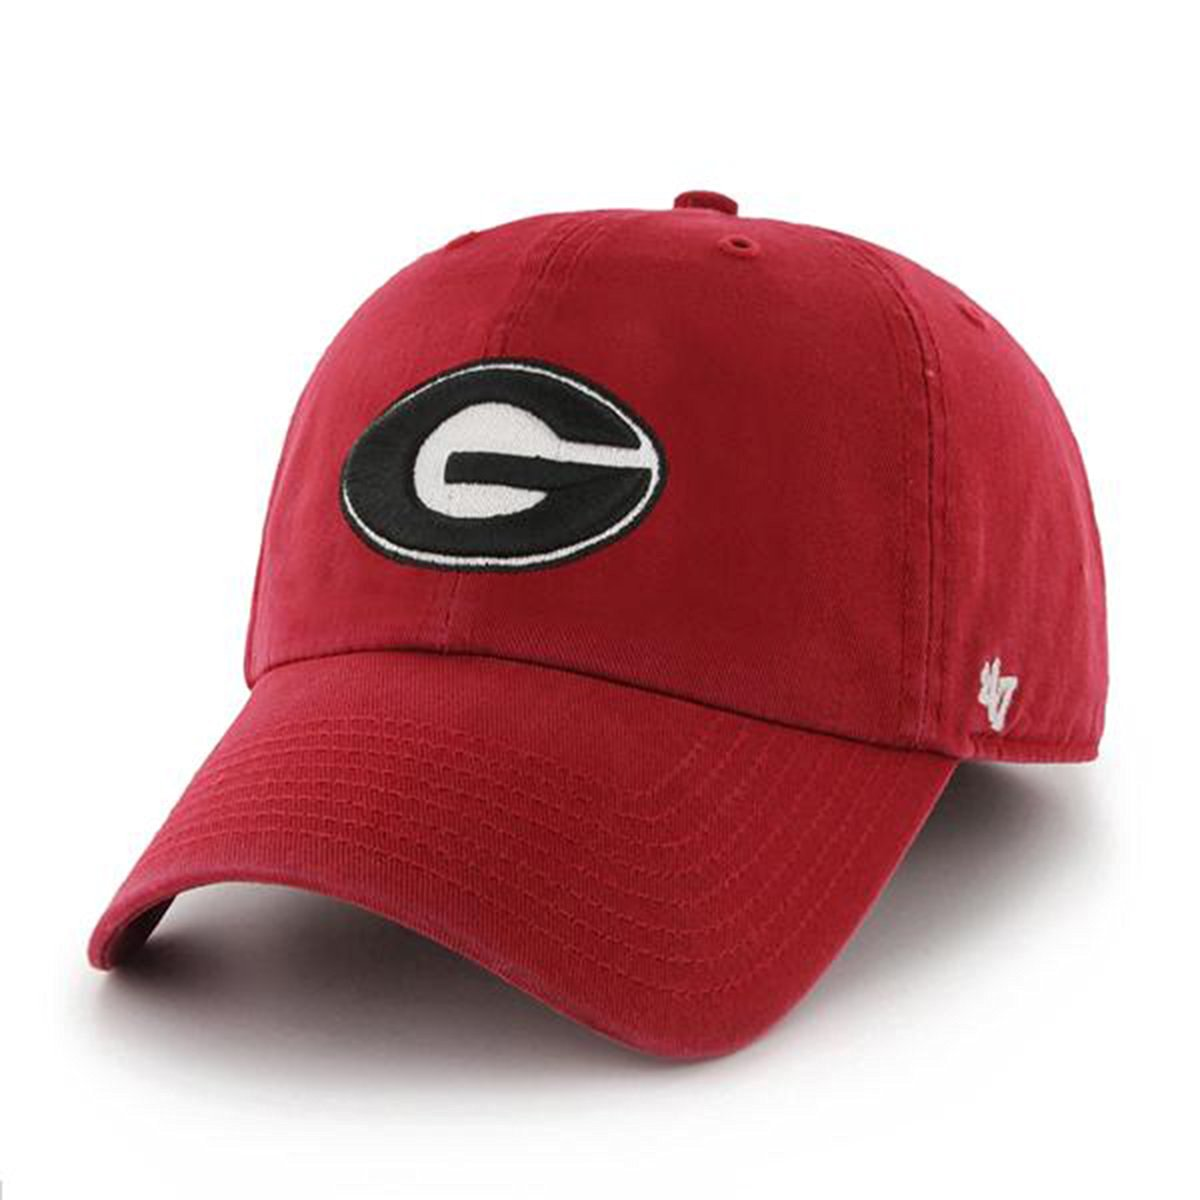 e0aeff99aef Buy 47 Brand Georgia Bulldogs White Fitted Franchise Hat in Cheap ...